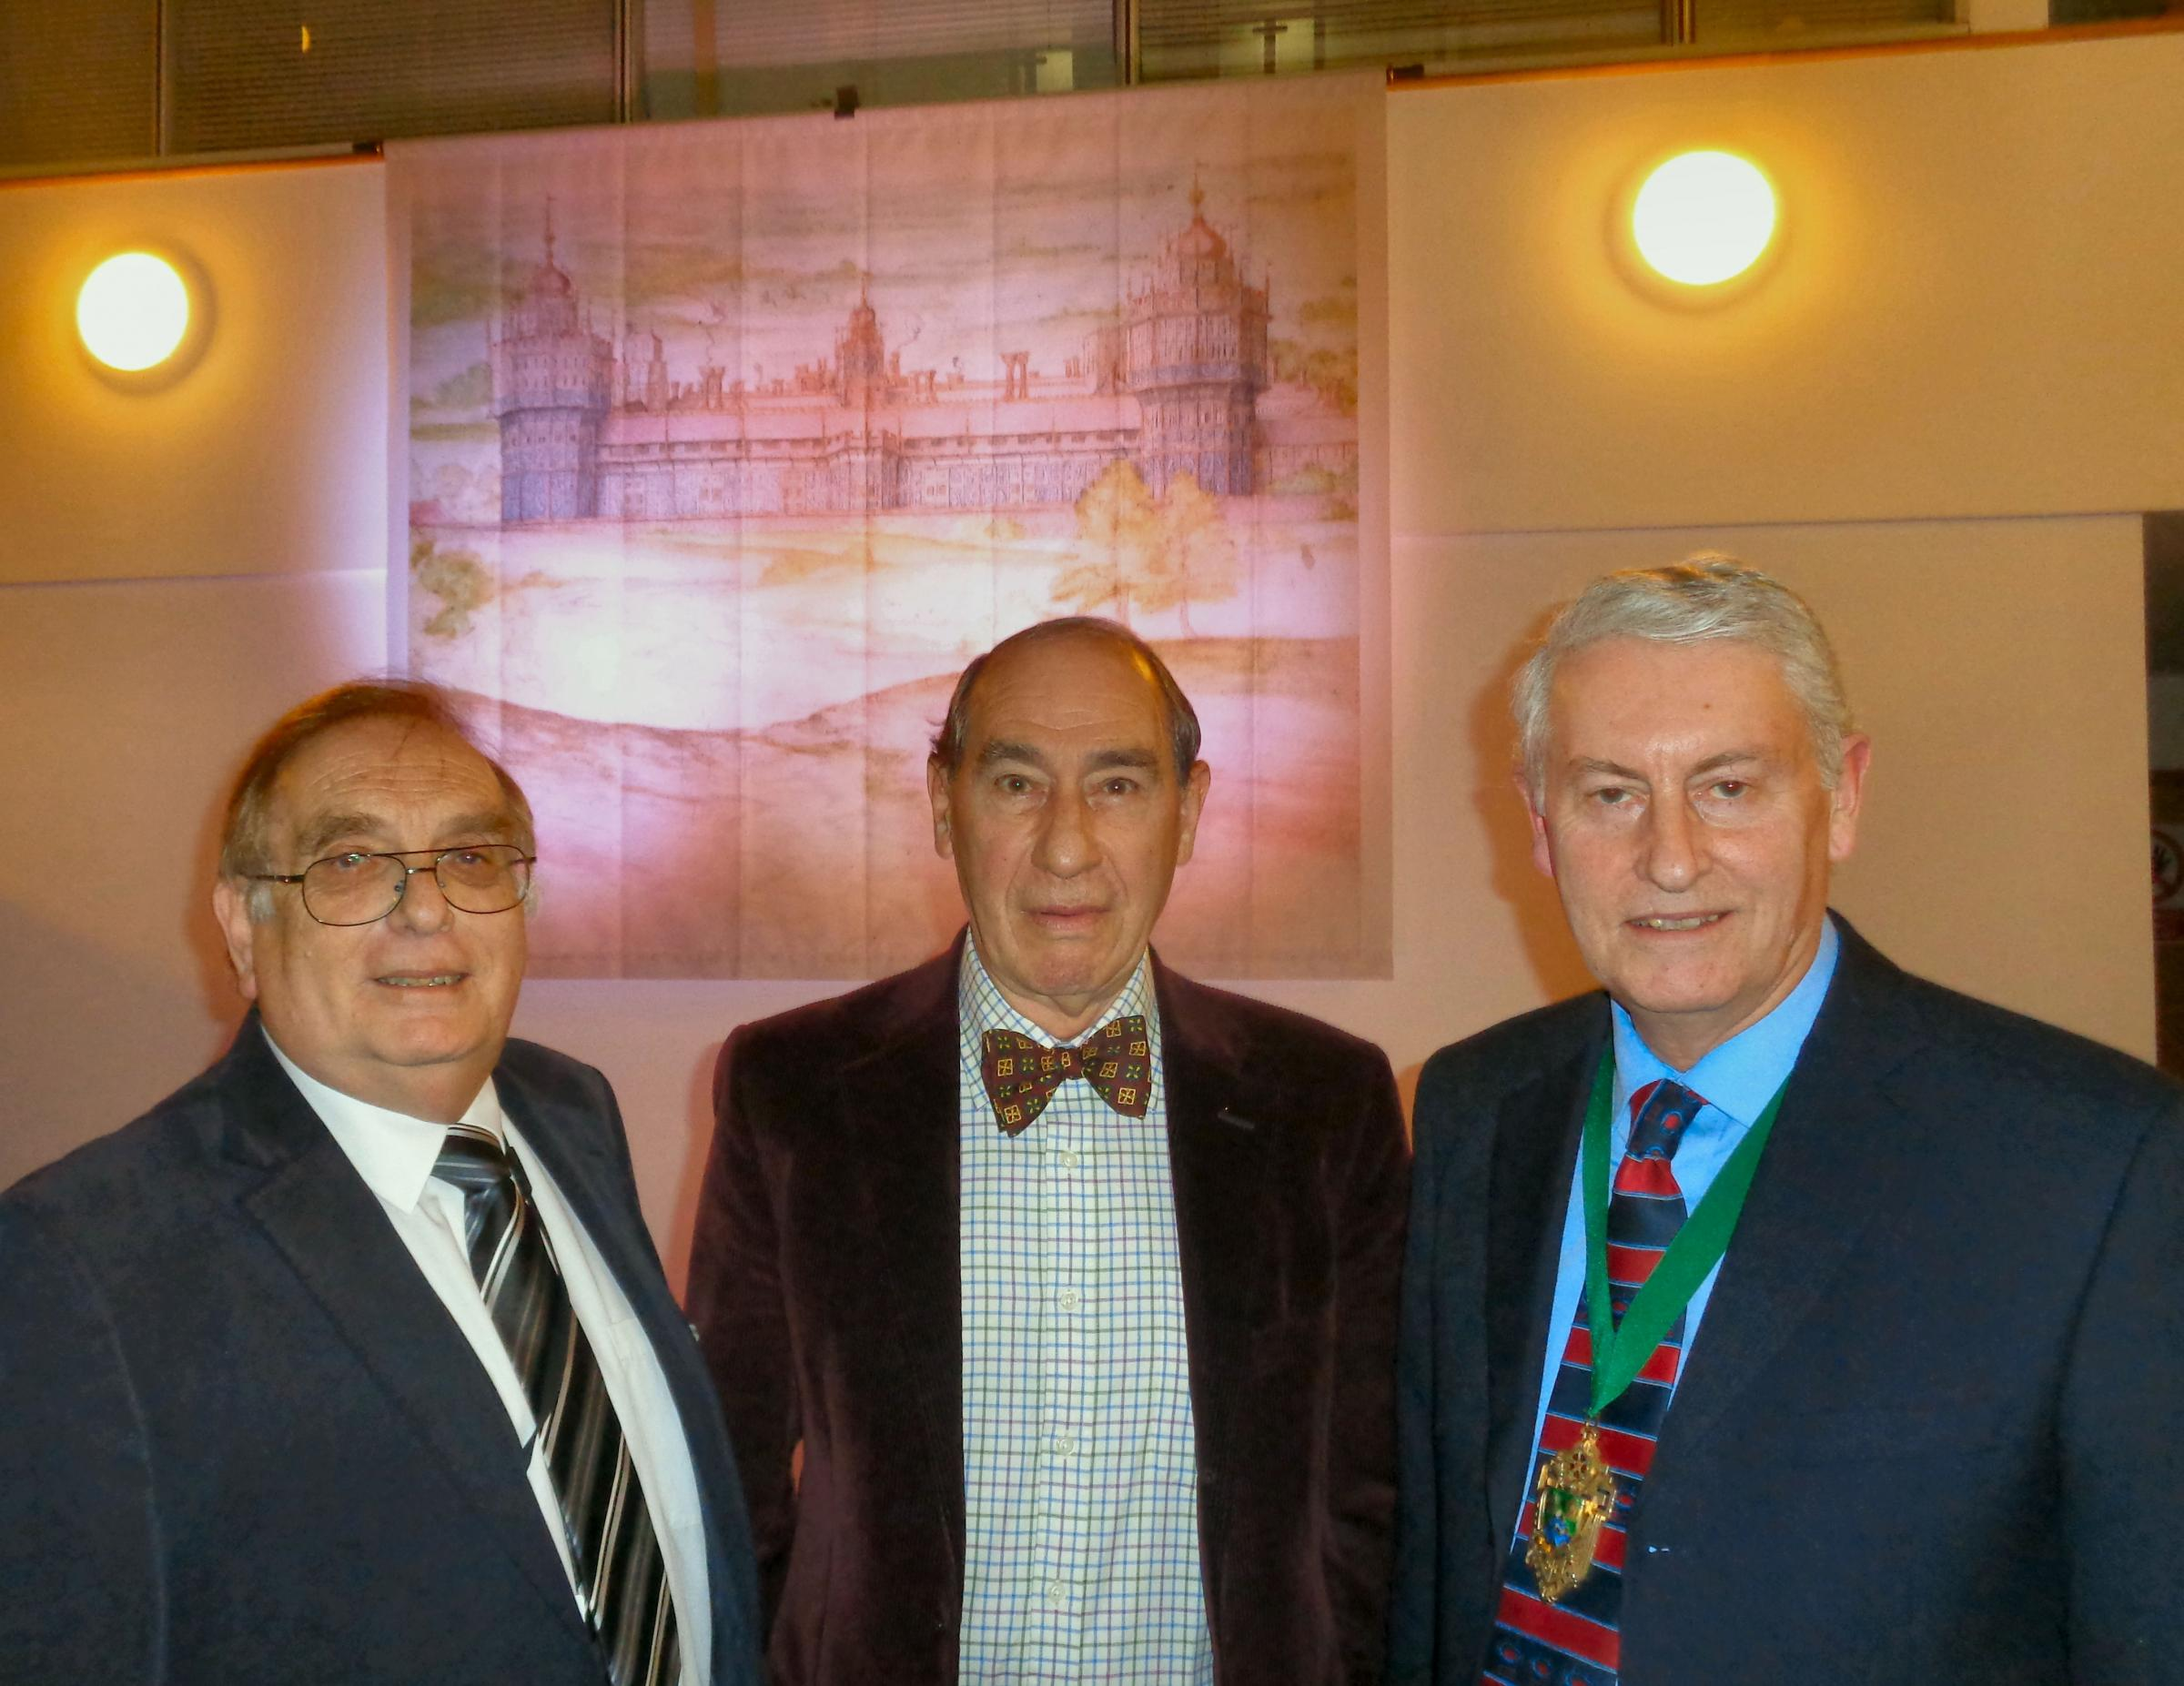 L-R: Mike Teasdale (the Chairman of Nonsuch Park Joint Management Committee), Dr Tim Carter (Lord of The Manor of Nonsuch) and Chris Frost (Mayor of Epsom & Ewell) (53897034)